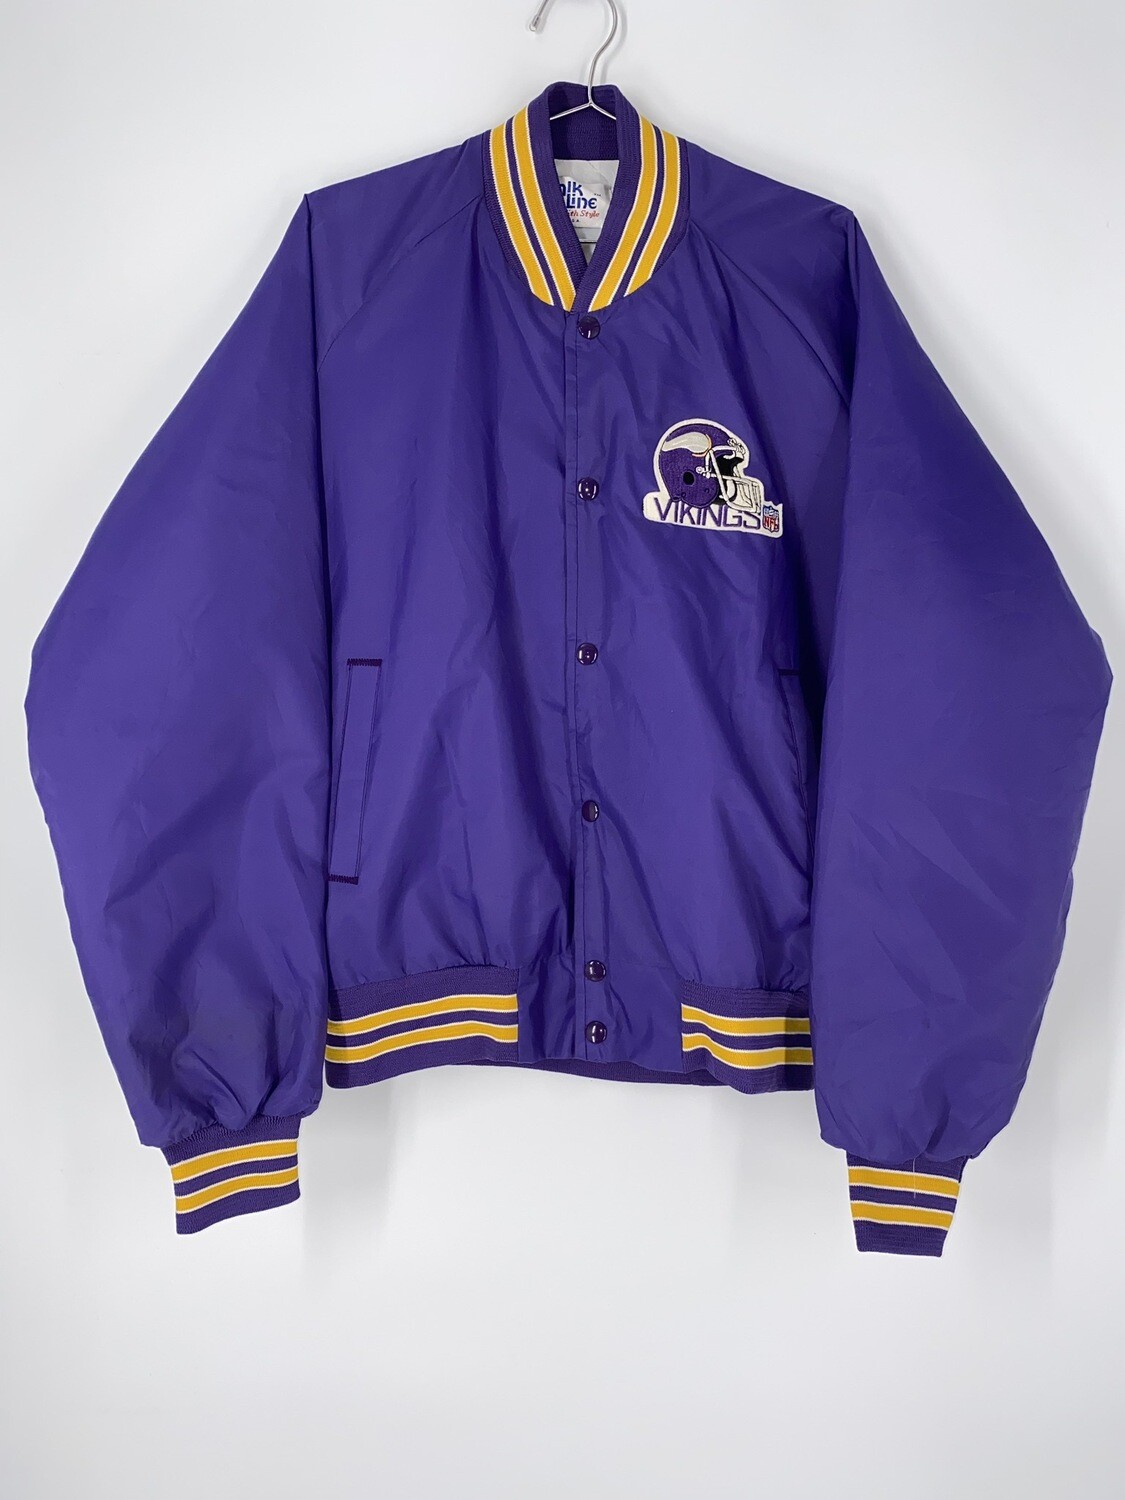 Chalk Line Purple Vikings Football Bomber Jacket Size L